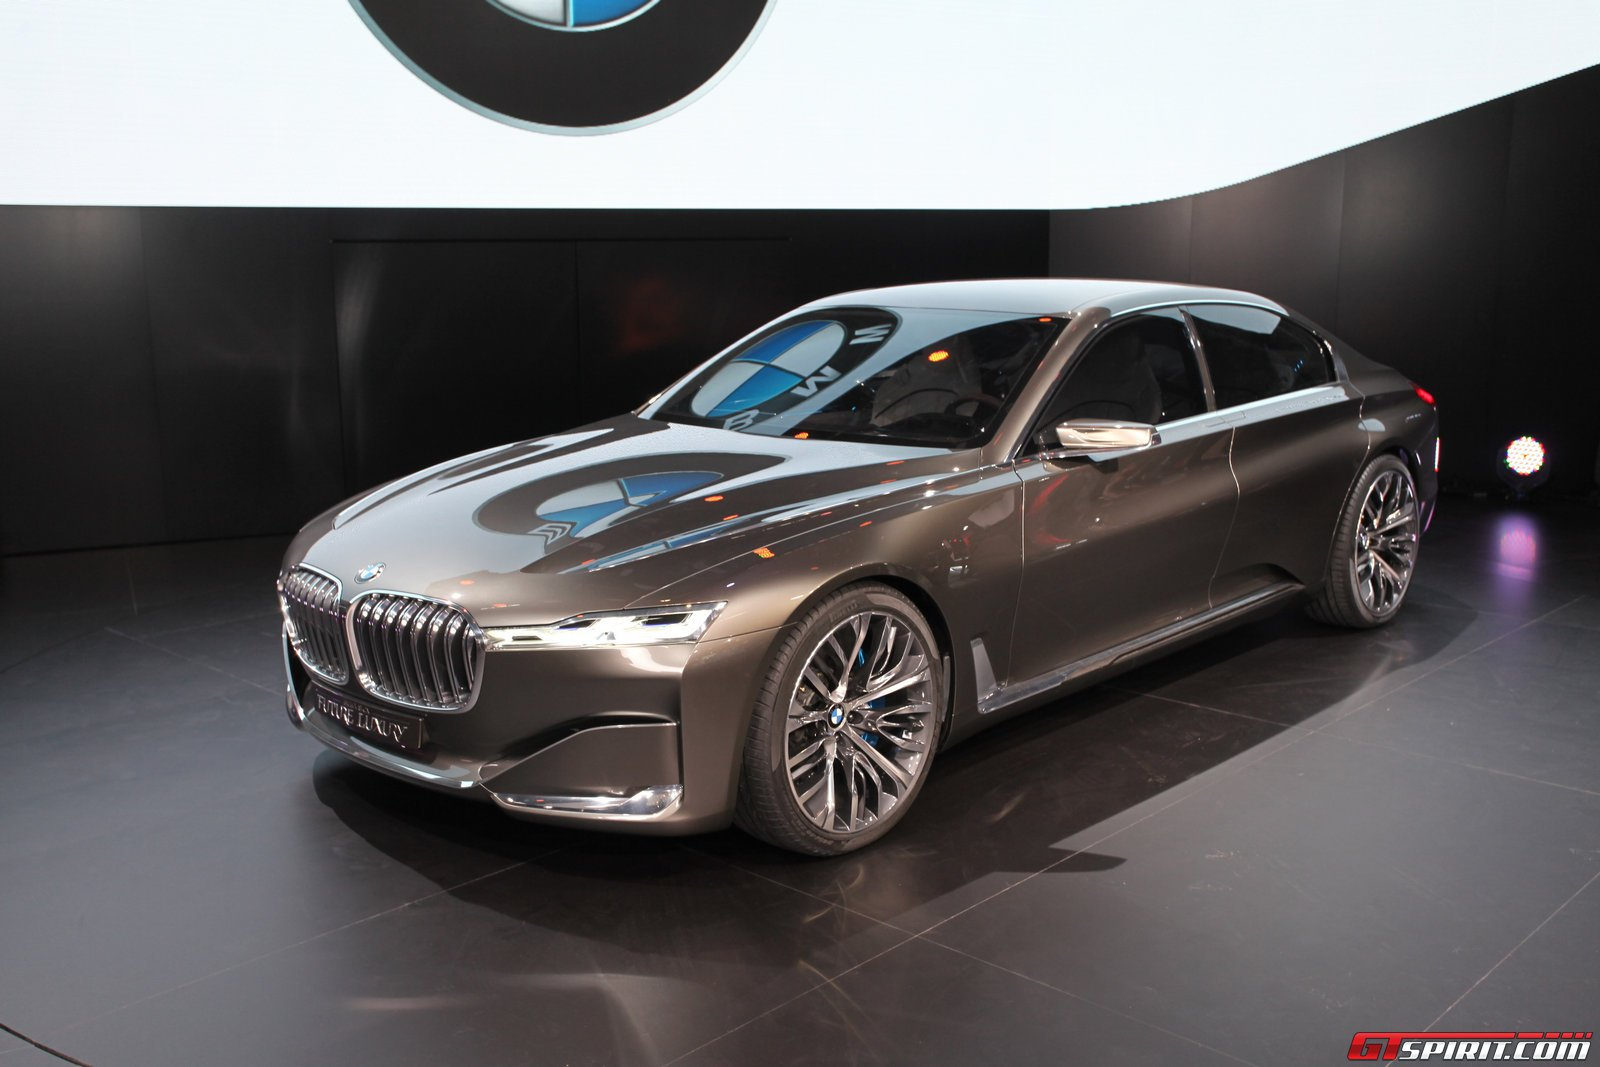 Amazing 2014 Bmw Vision Future Luxury Concept Pictures & Backgrounds